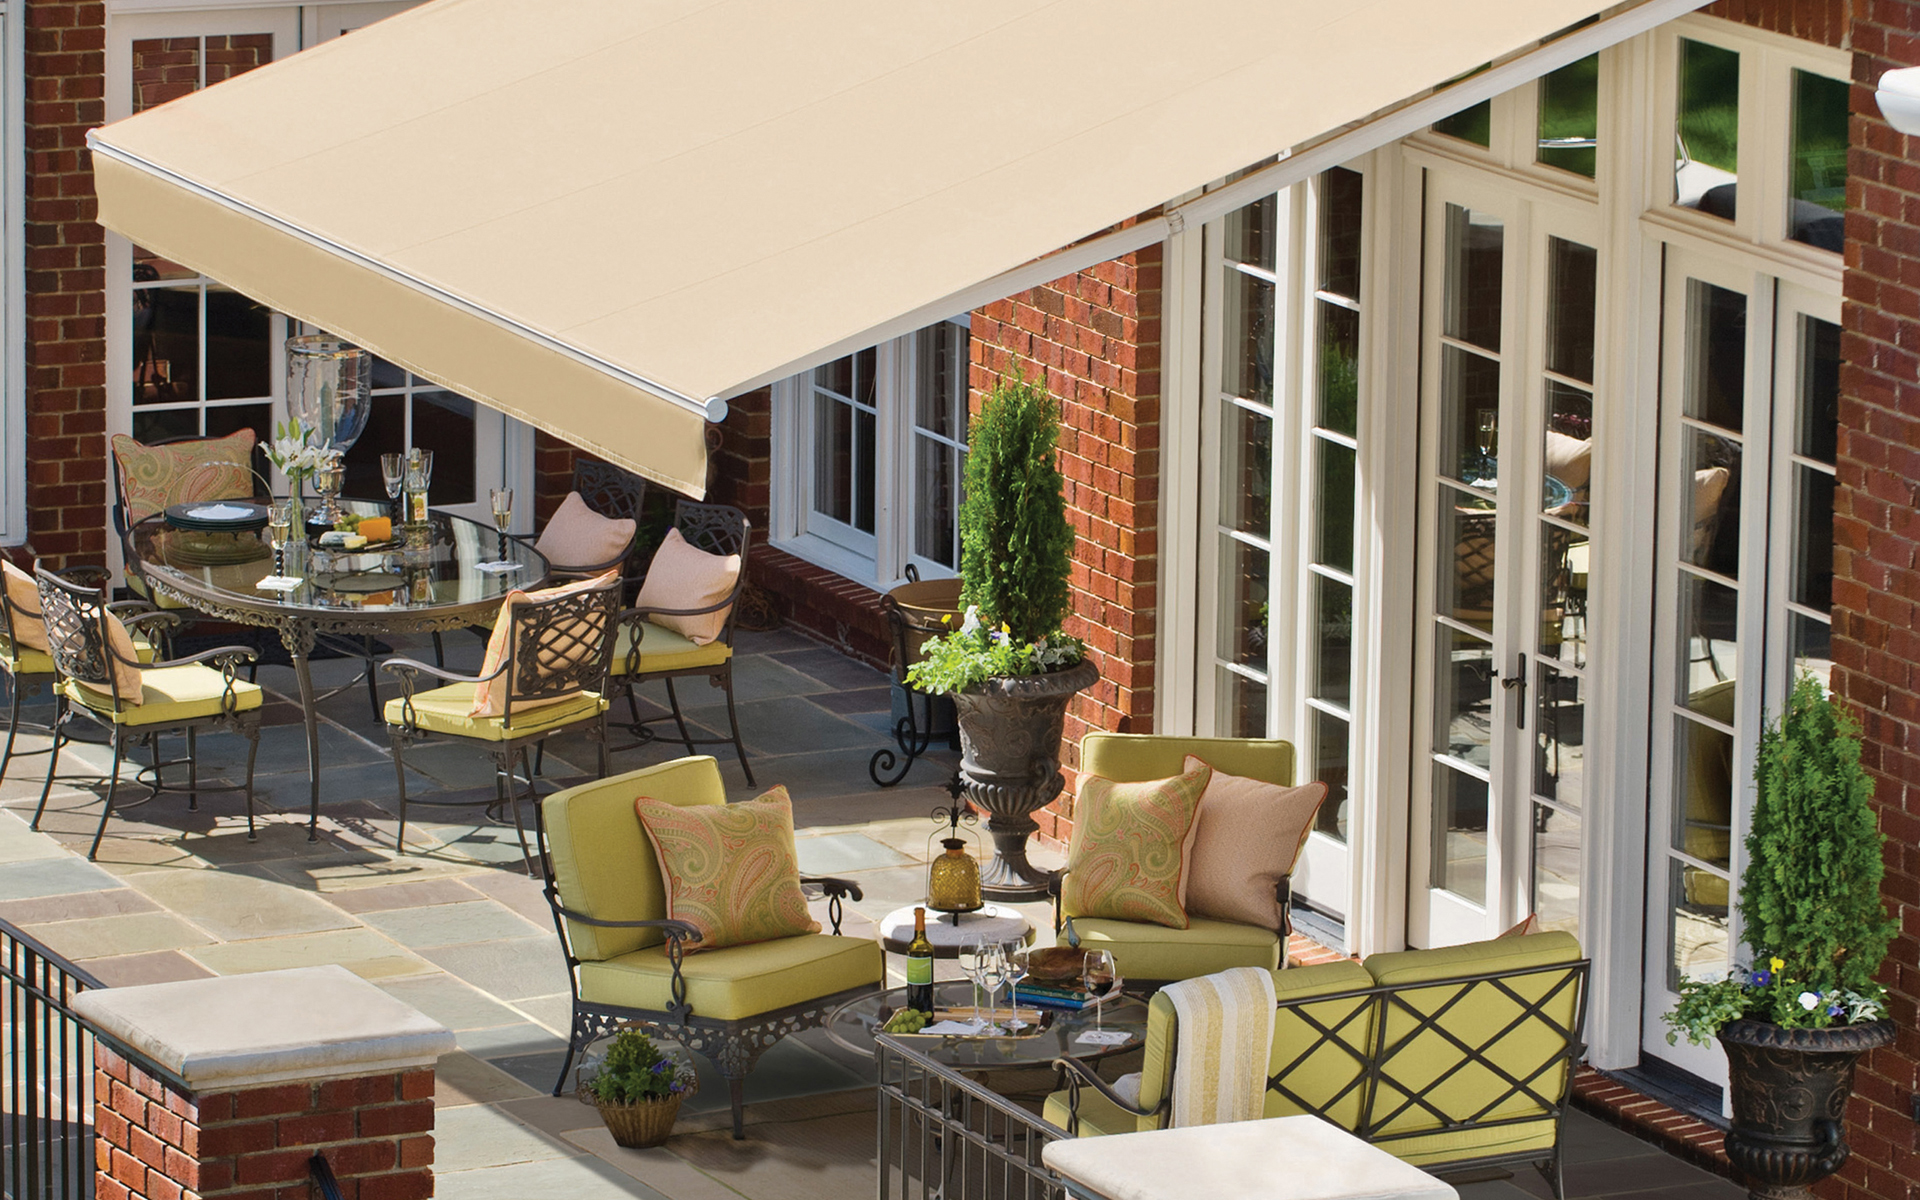 Pergola Design NY, CT | Shade Awnings for DEck and patio ny, ct